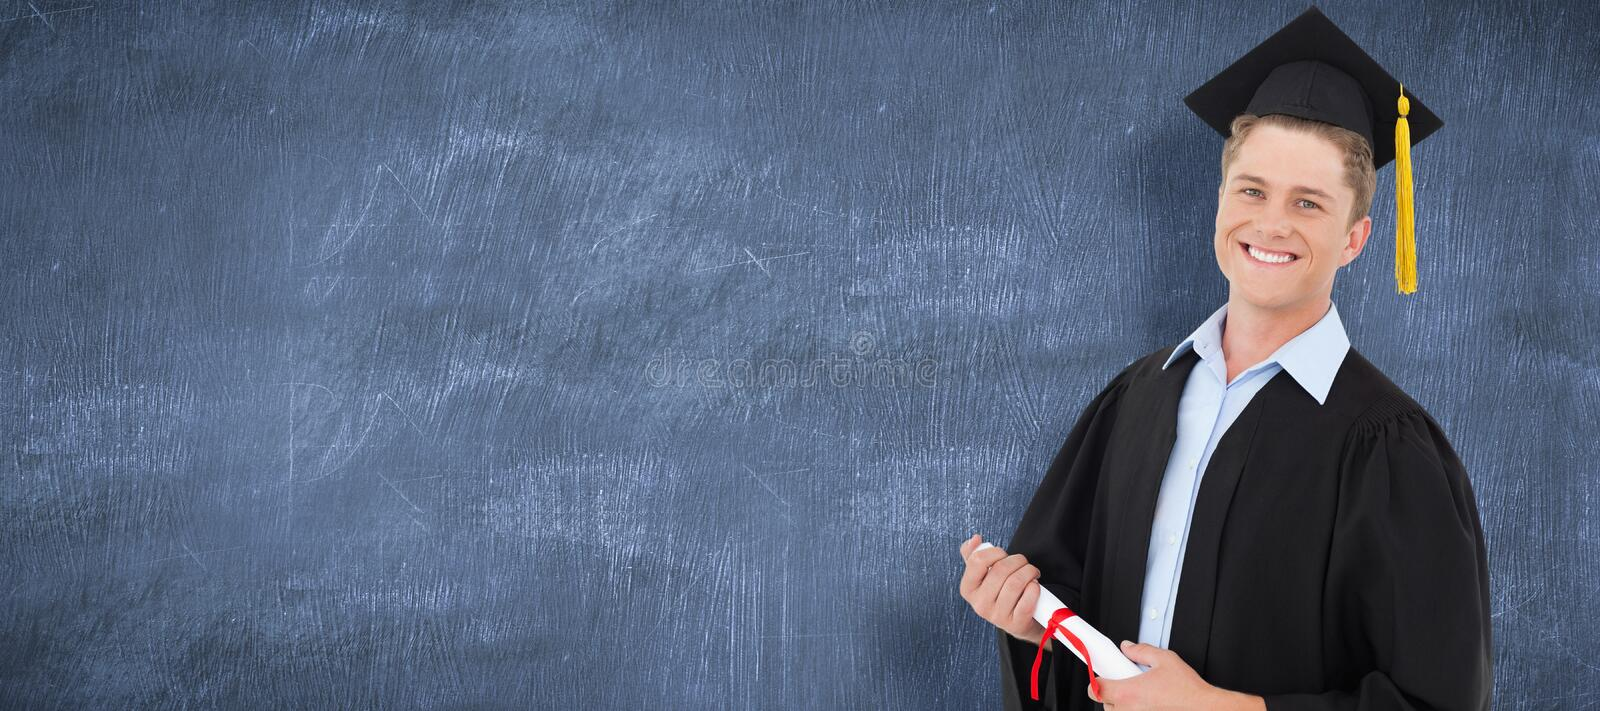 Composite image of a smiling man with a degree in hand as he looks at the camera stock photography